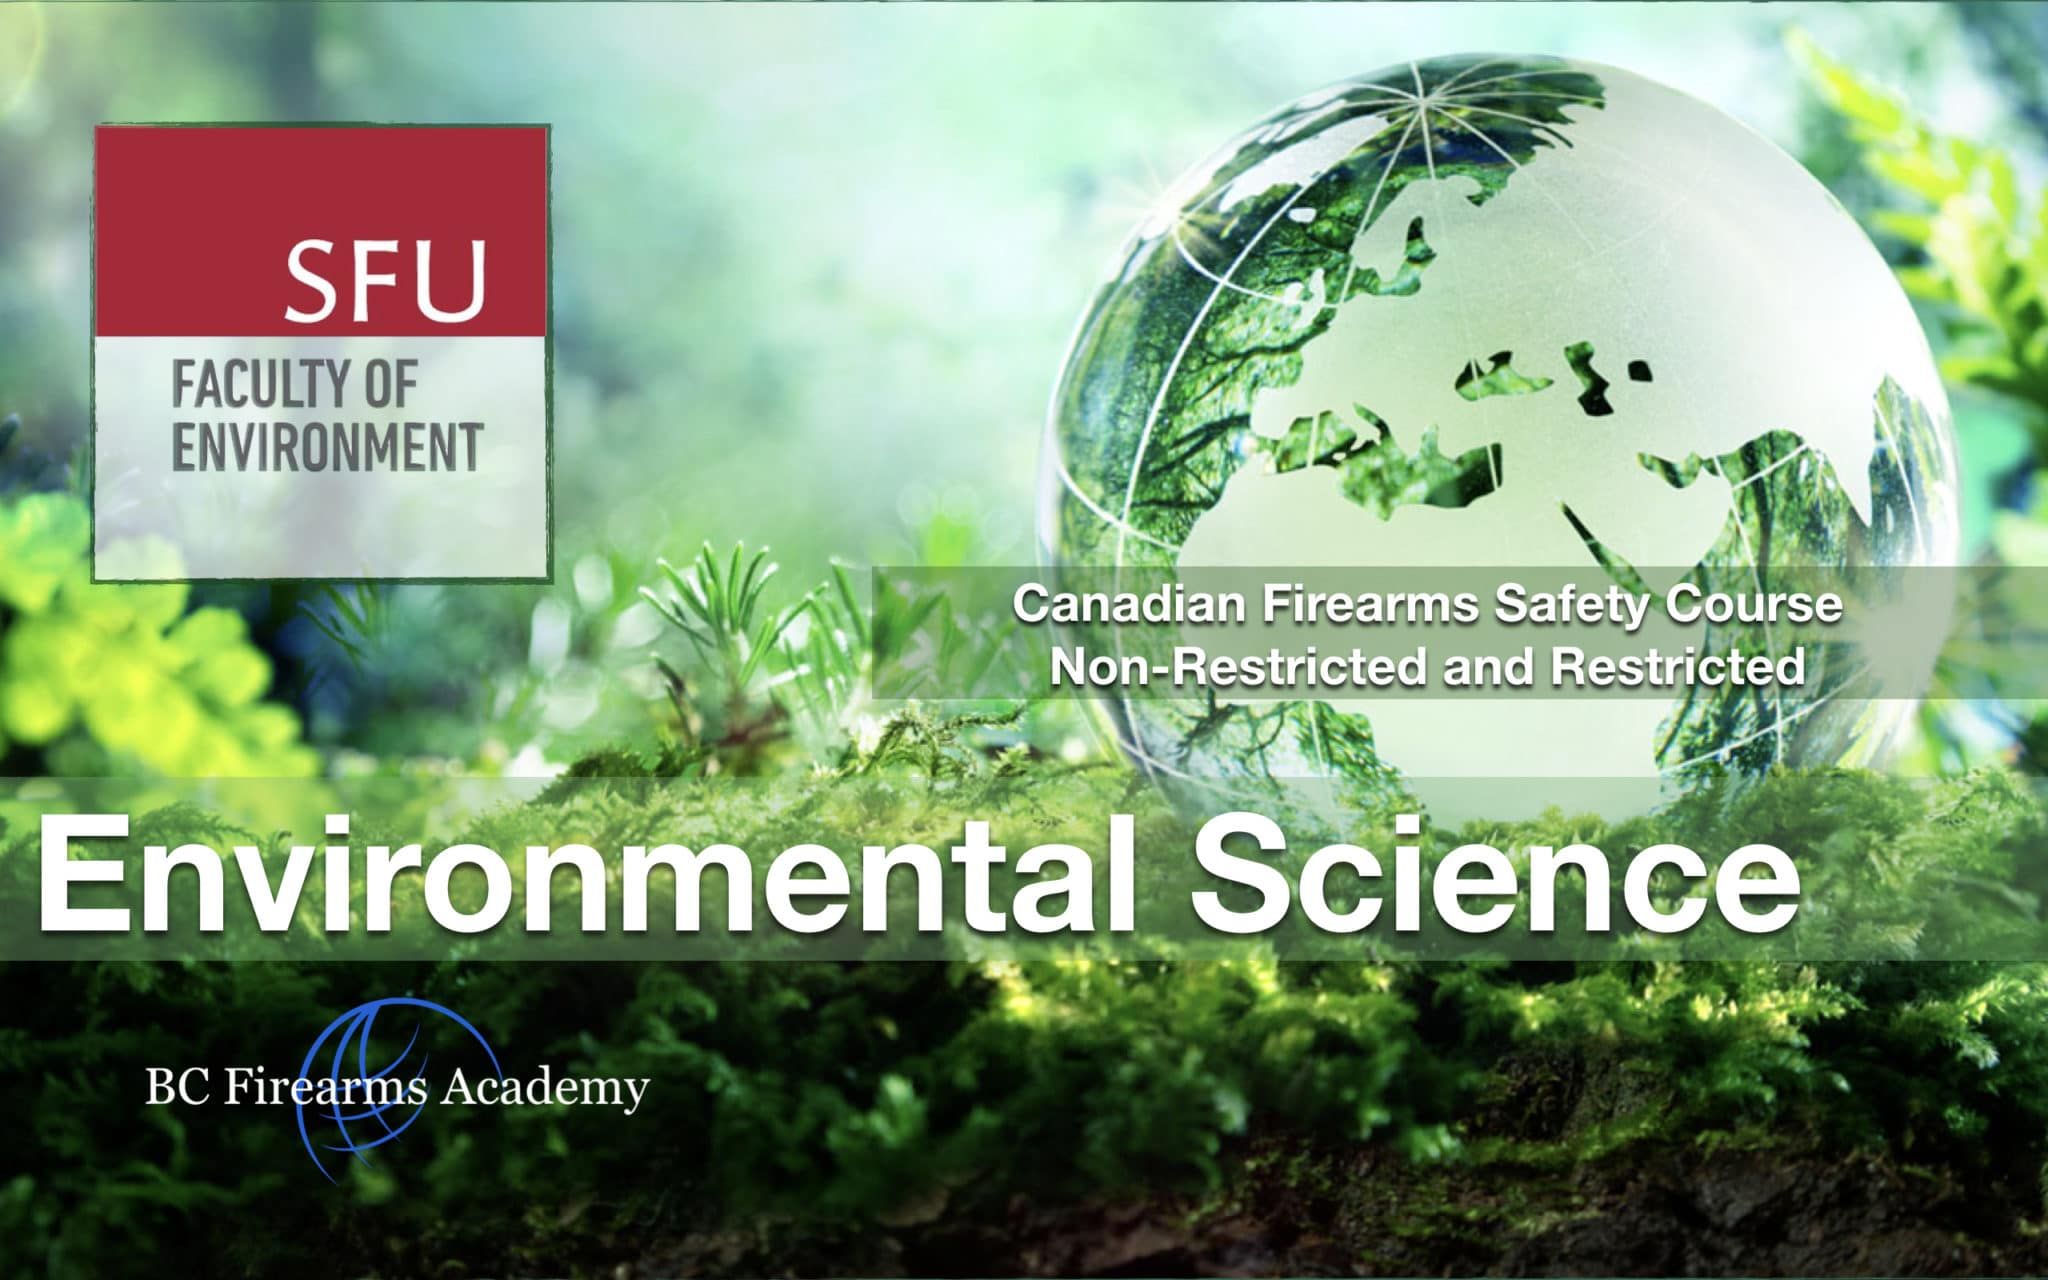 Canadian Firearms Safety Course & Restricted Safety Course JIBC Feb 2 & 3 SFU Environmental Science